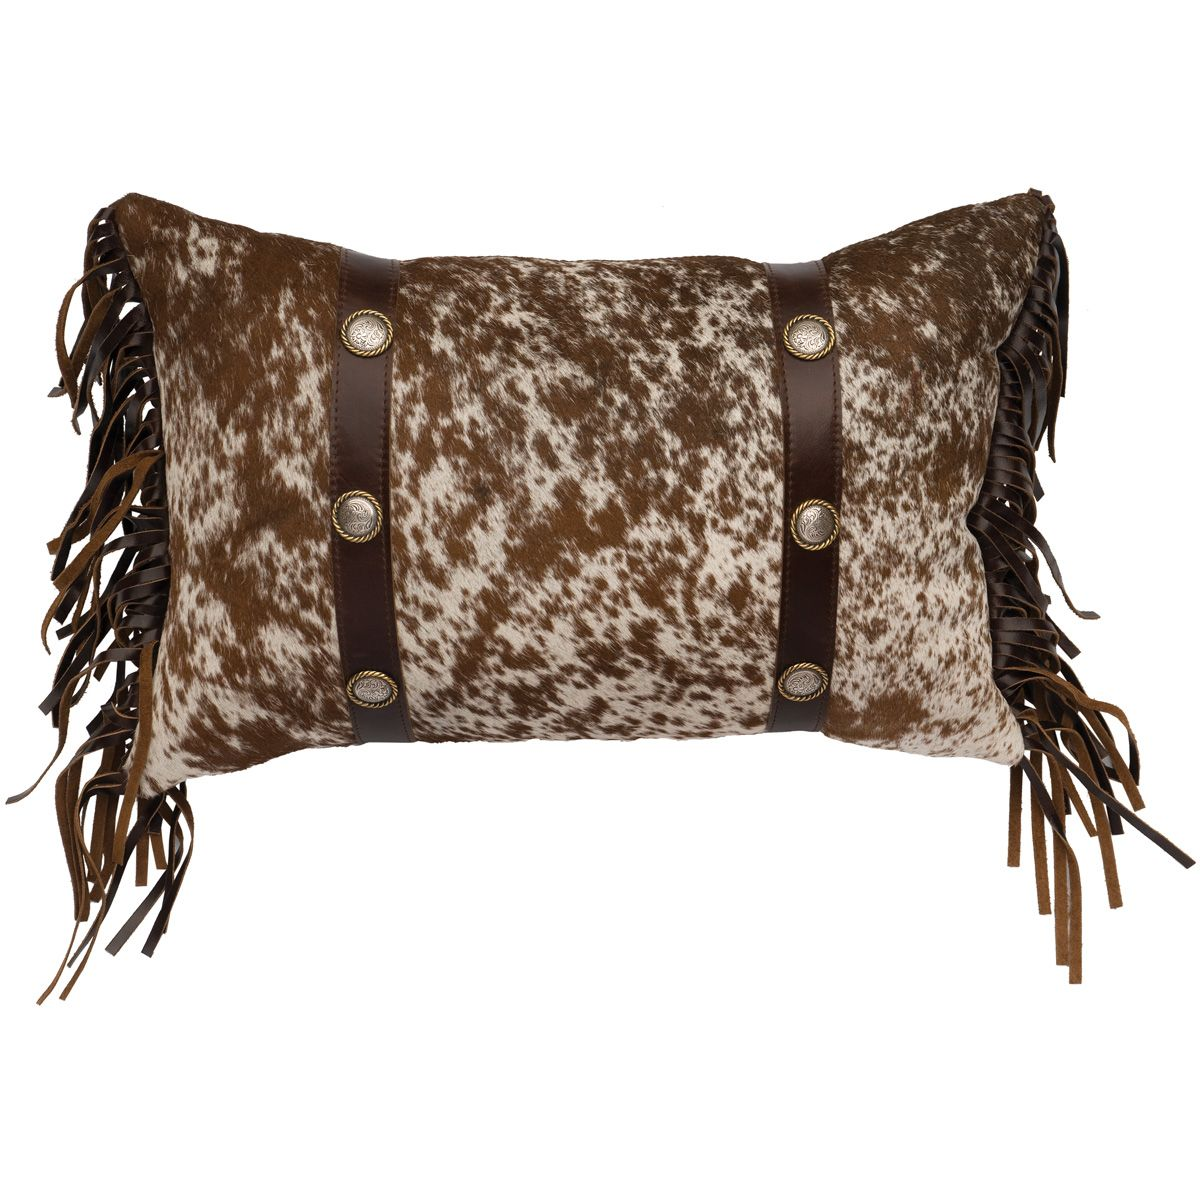 Speckled Hair on Hide with Leather Bands Pillow and Fabric Back